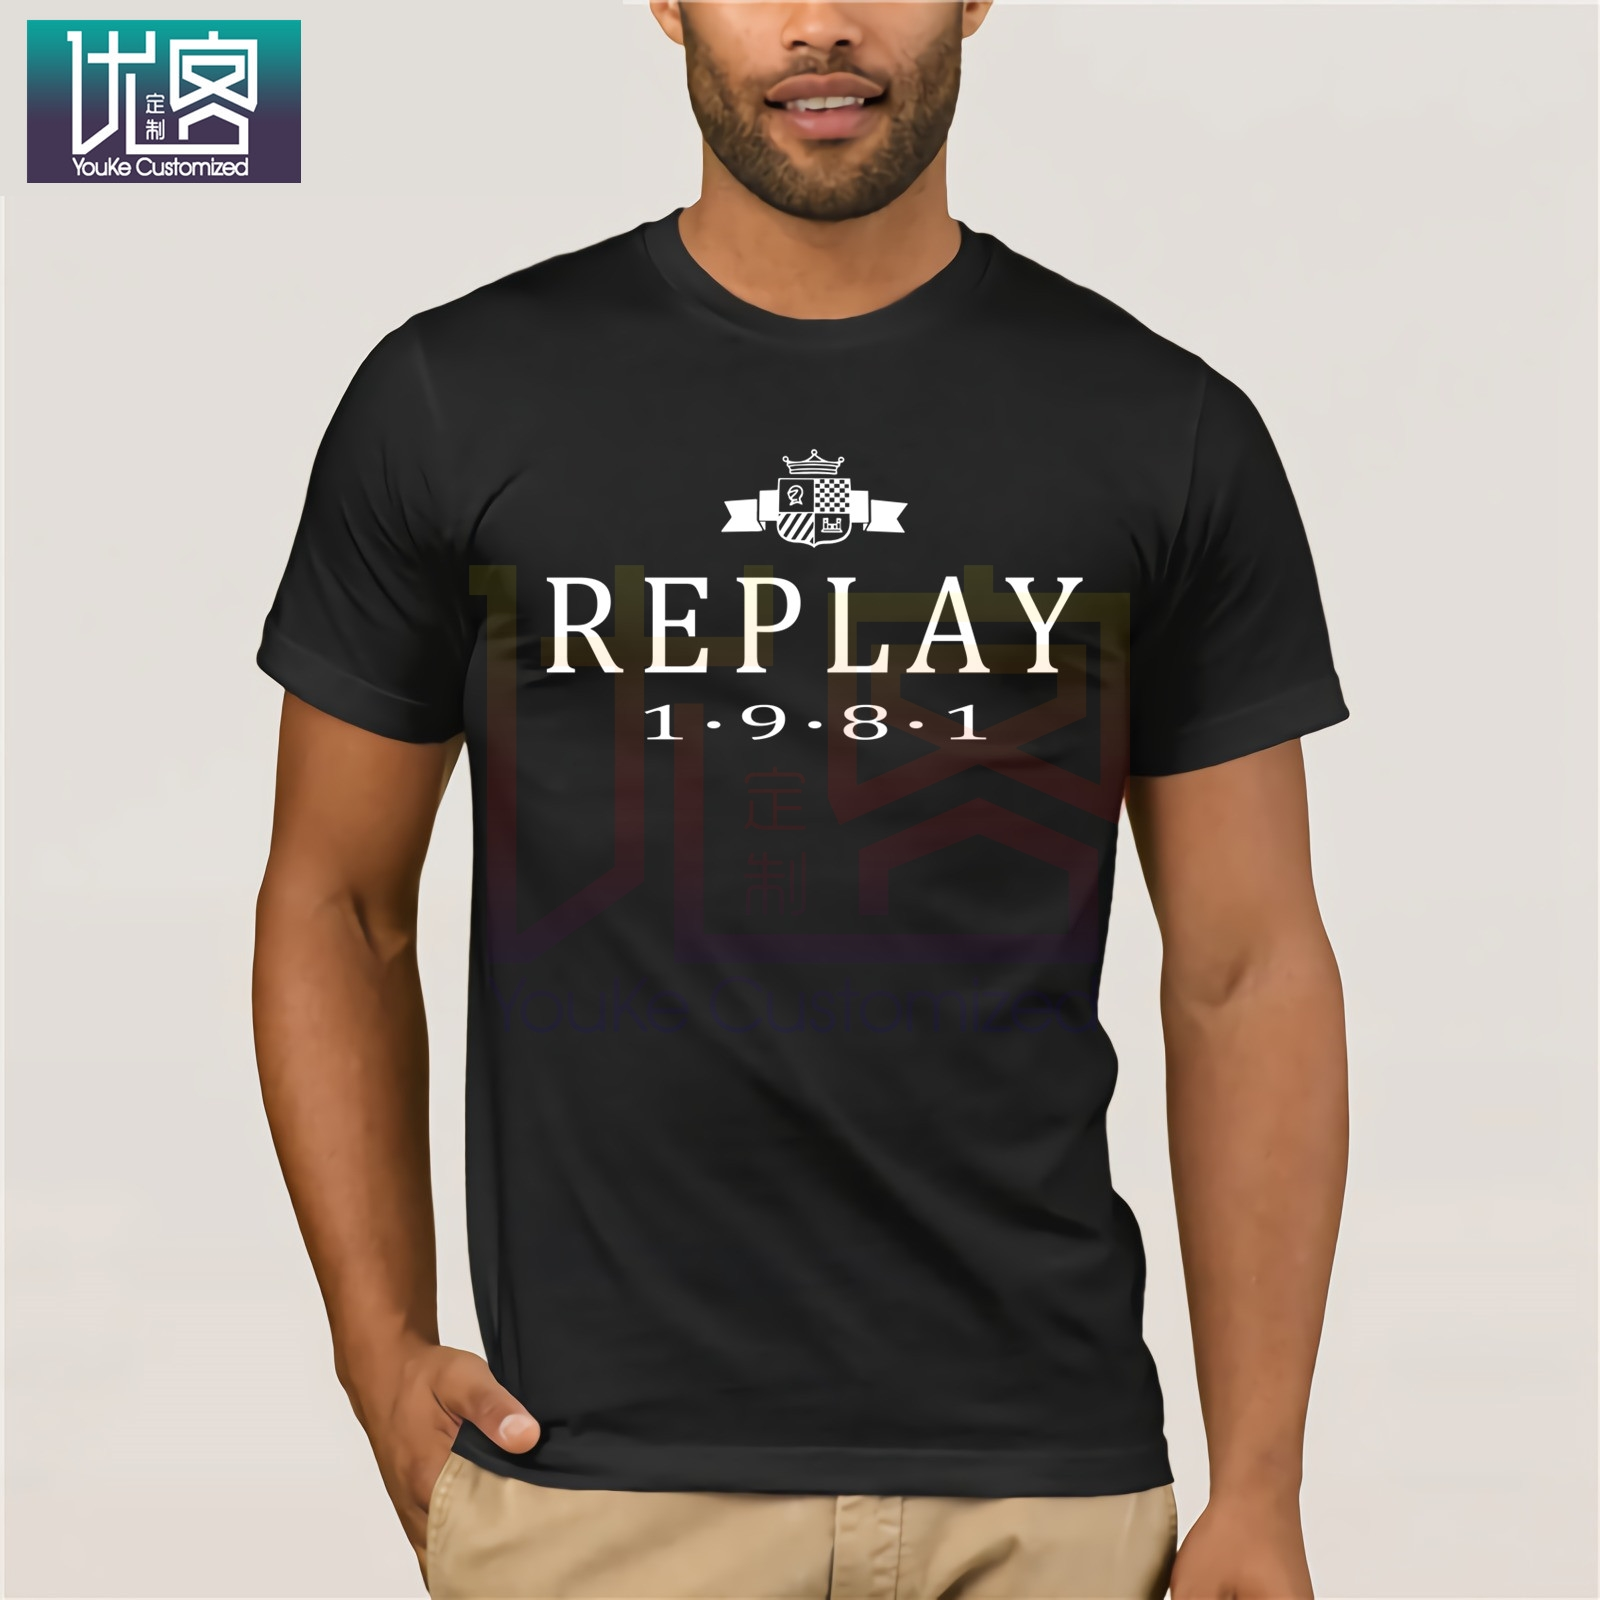 REPLAY 1981 T-Shirt Clothes Popular T-Shirt Crewneck 100% Cotton Tees Funny Tees Cotton Tops T-Shirt Casual Short Sleeve Top